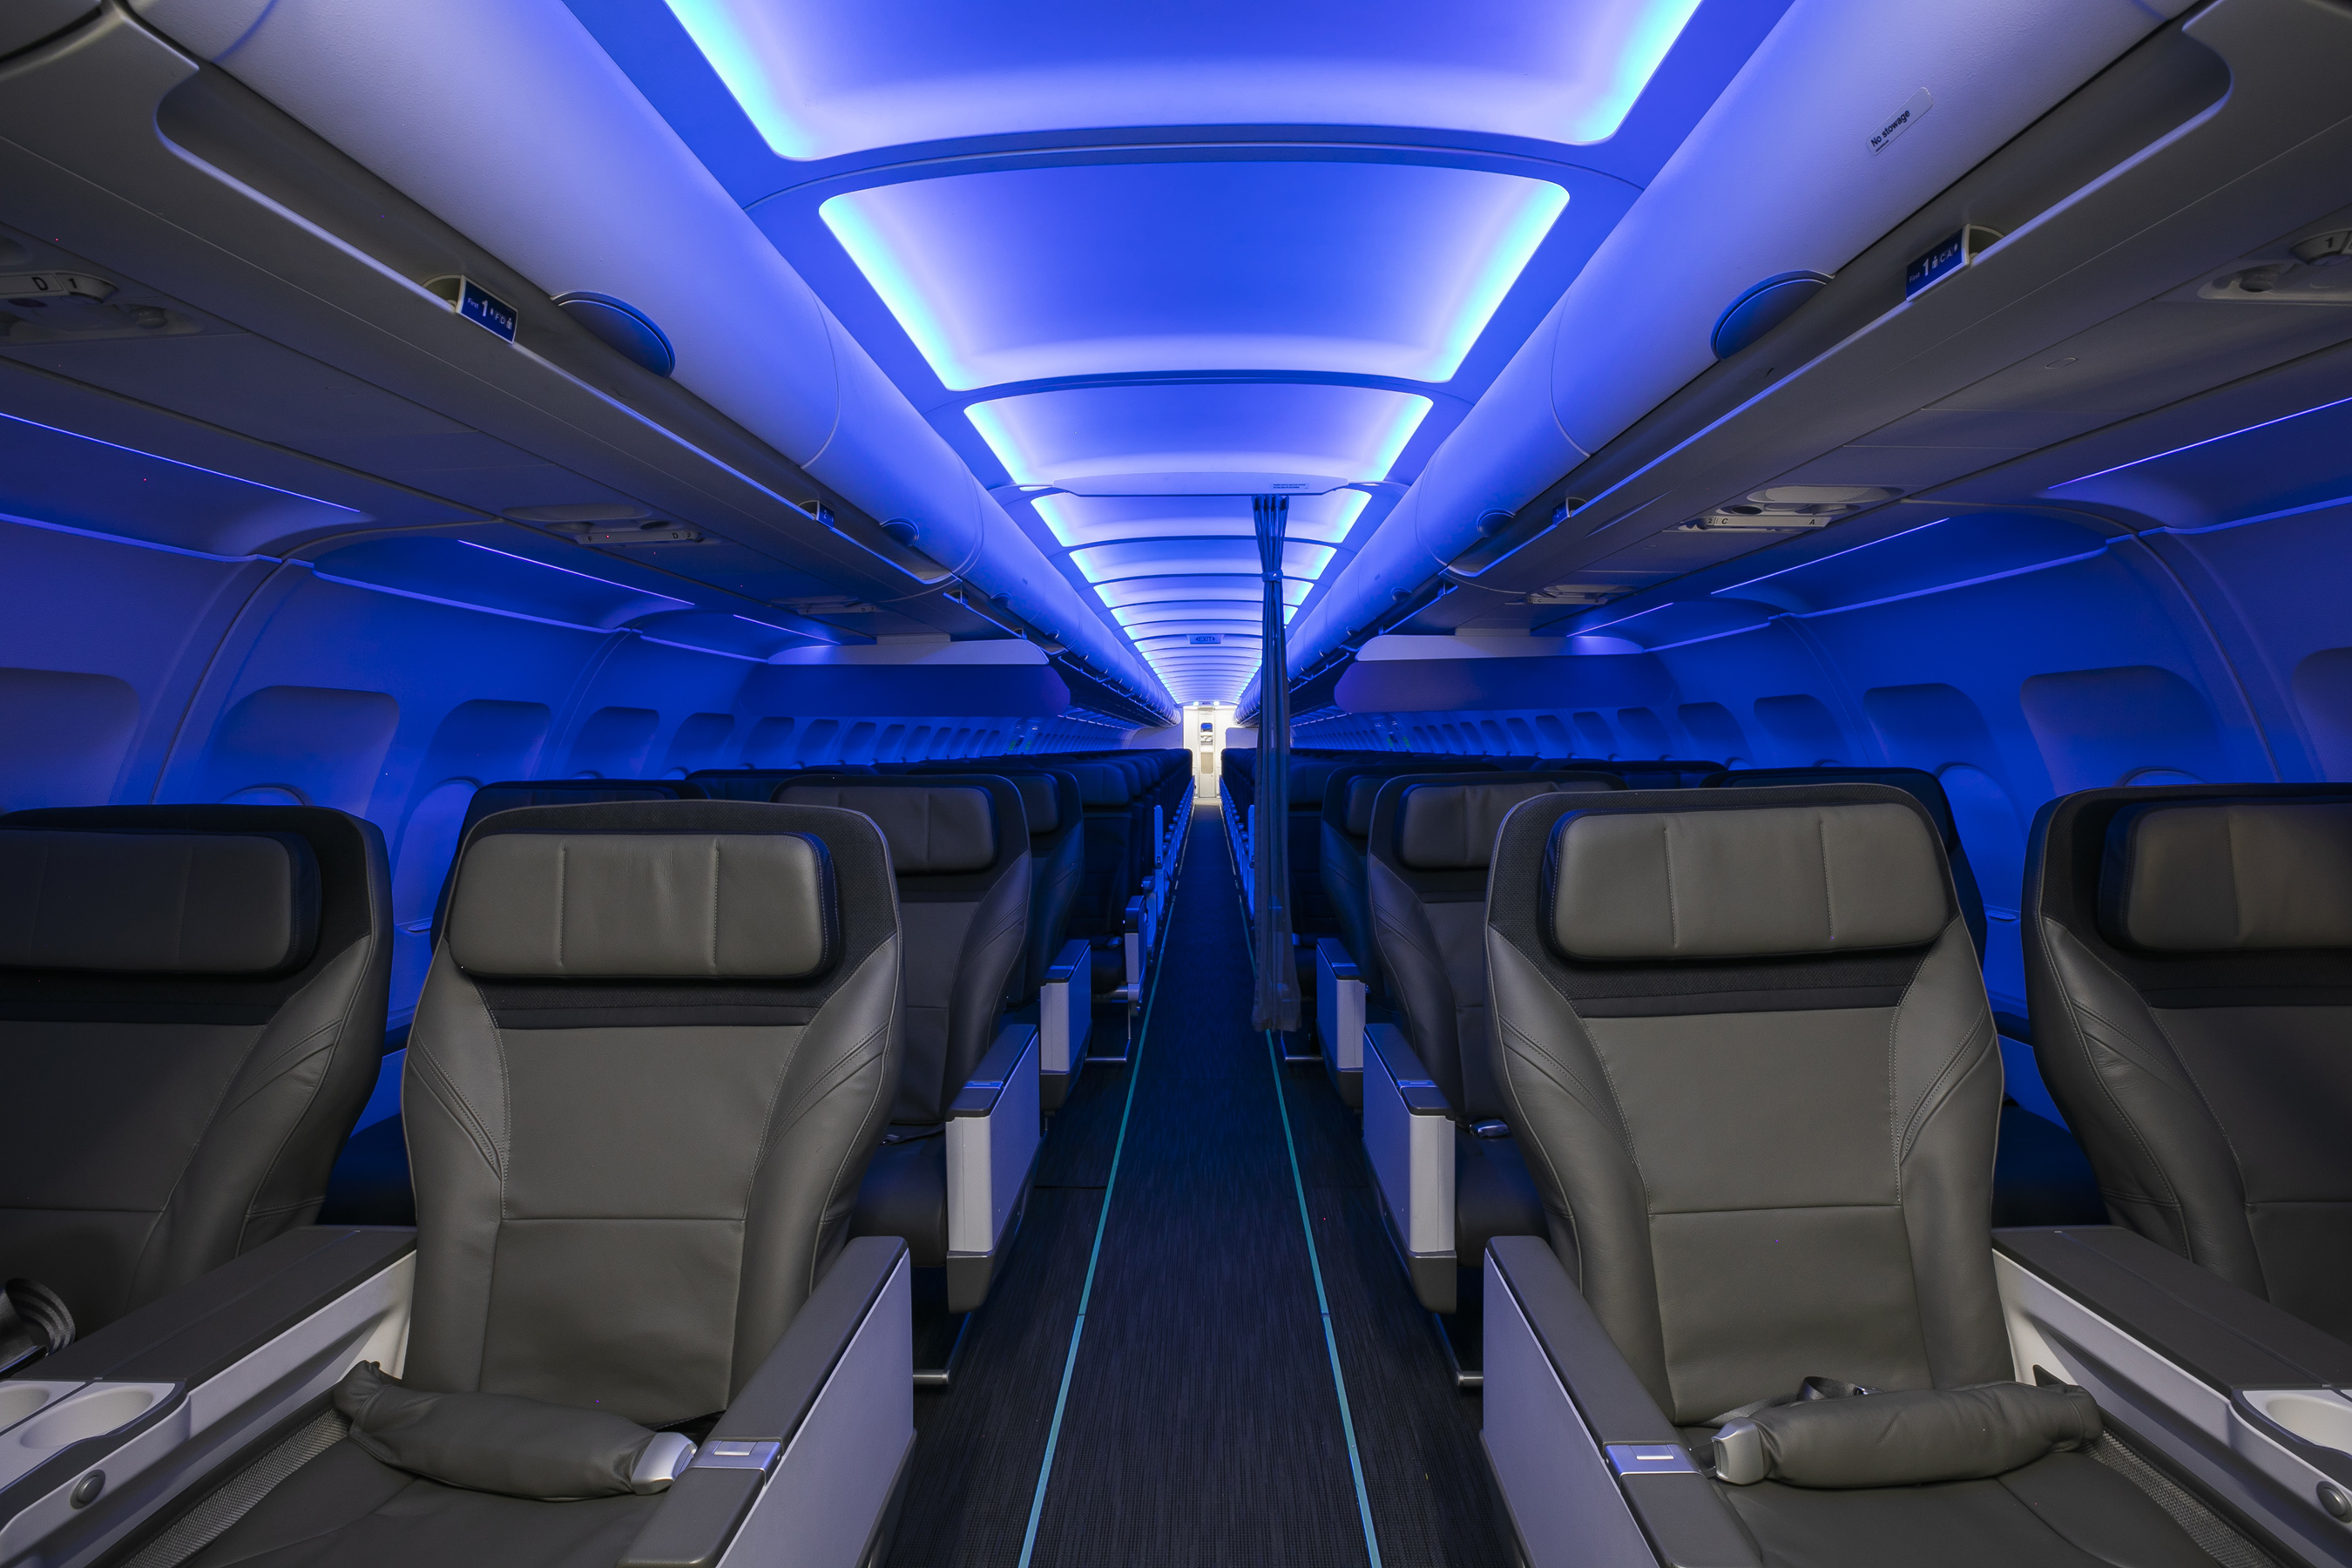 Now arriving: Alaska Airlines' new cabin experience | Alaska Air